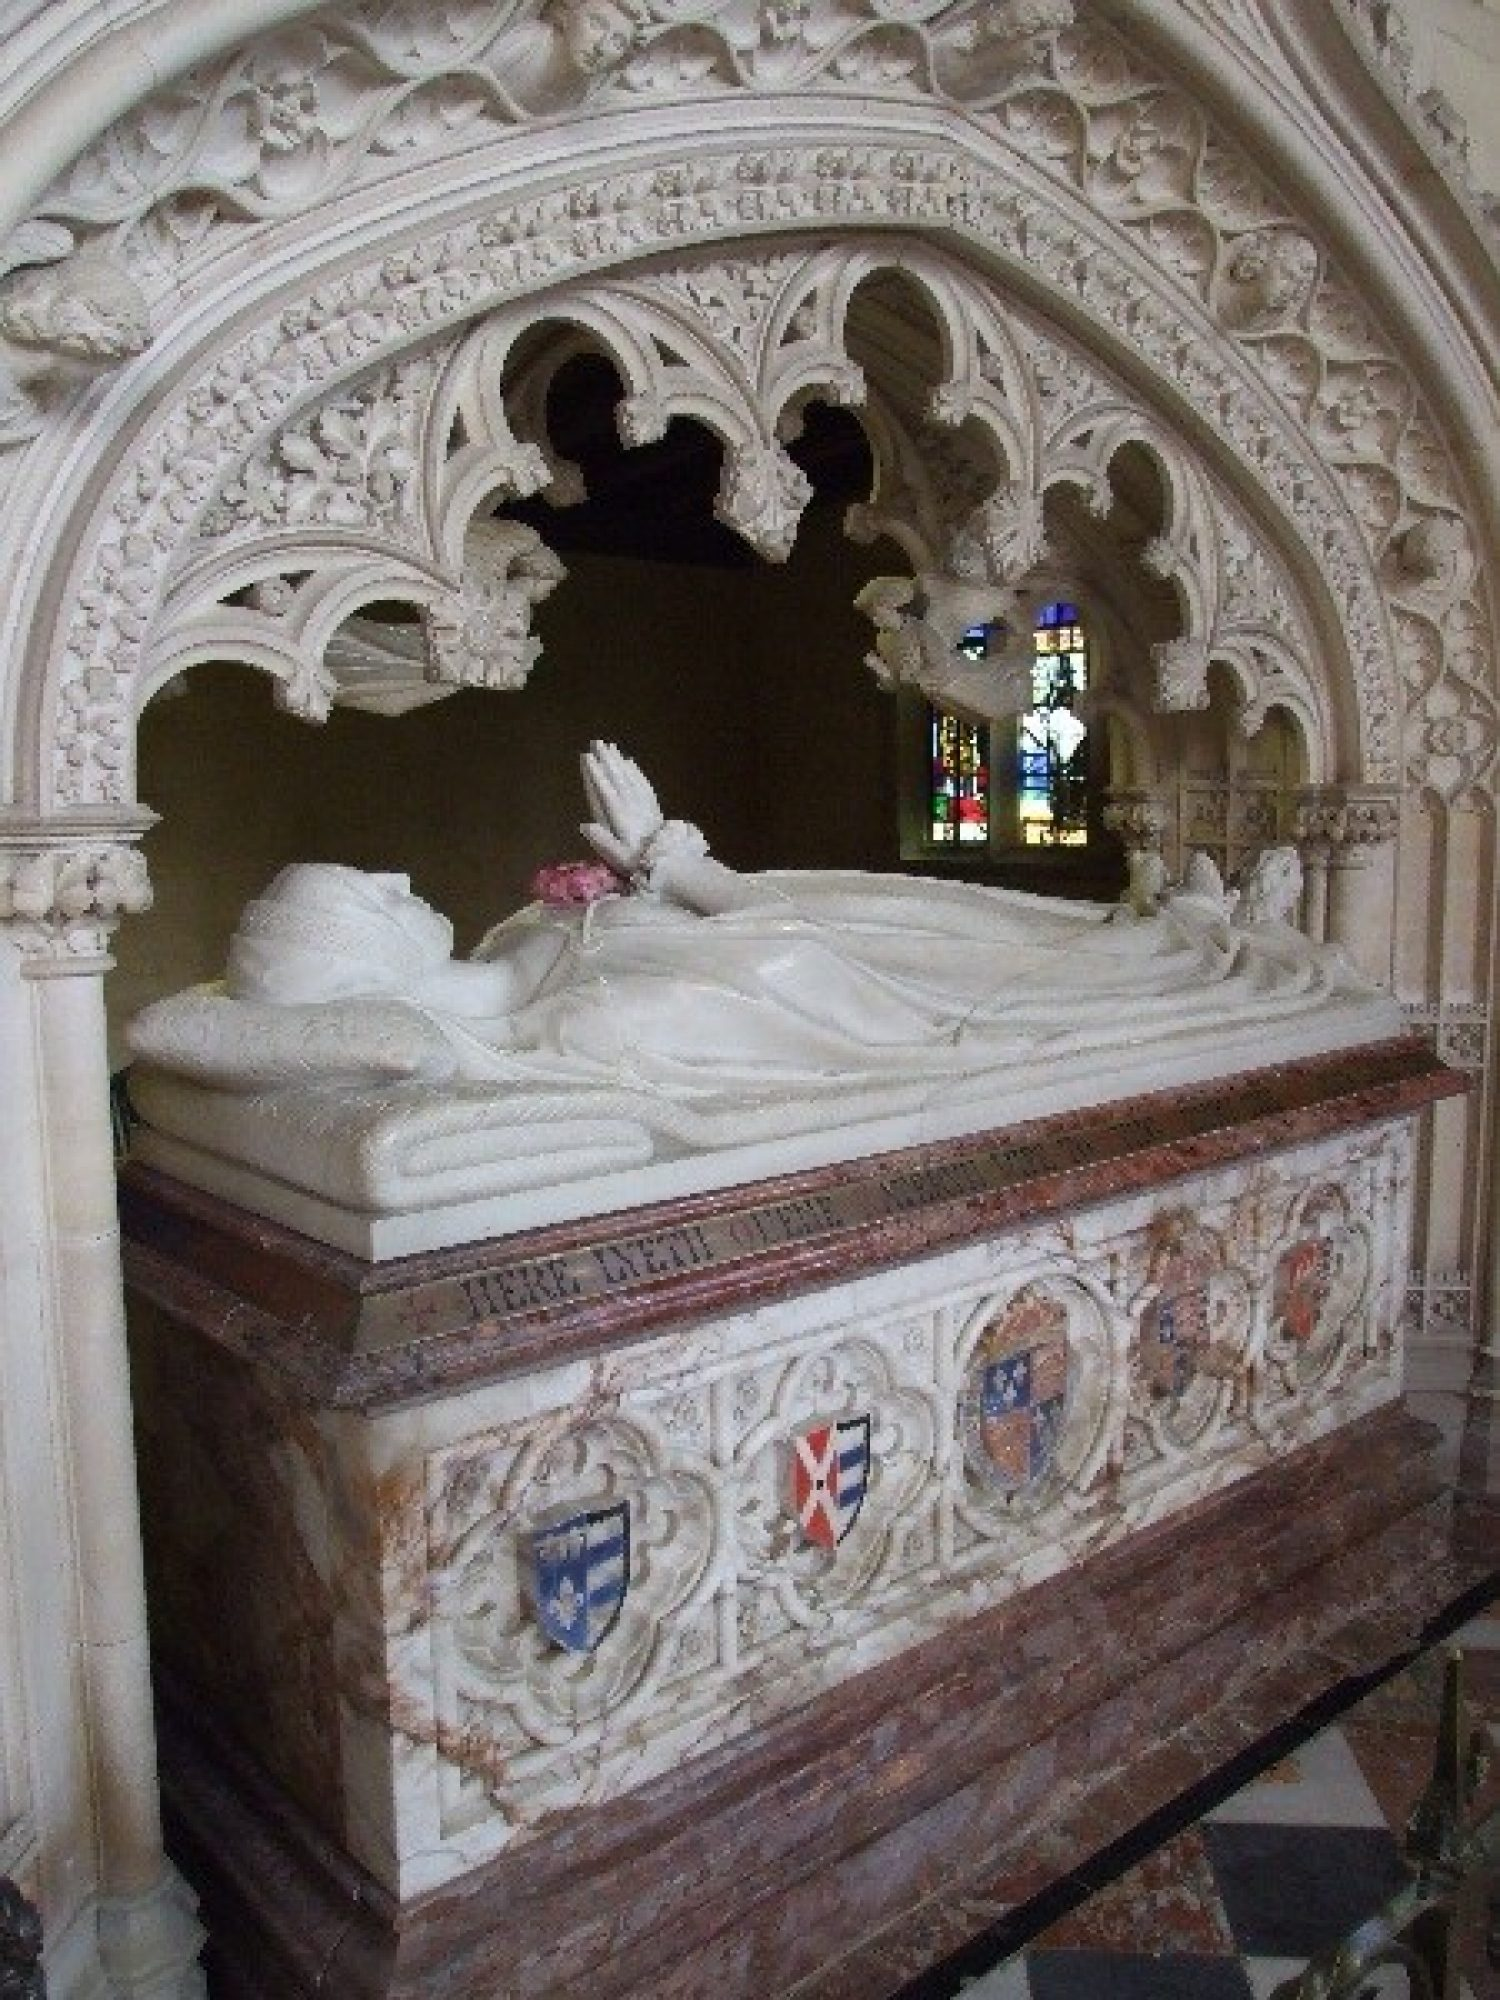 Photo of the resting place of Katherine Parr